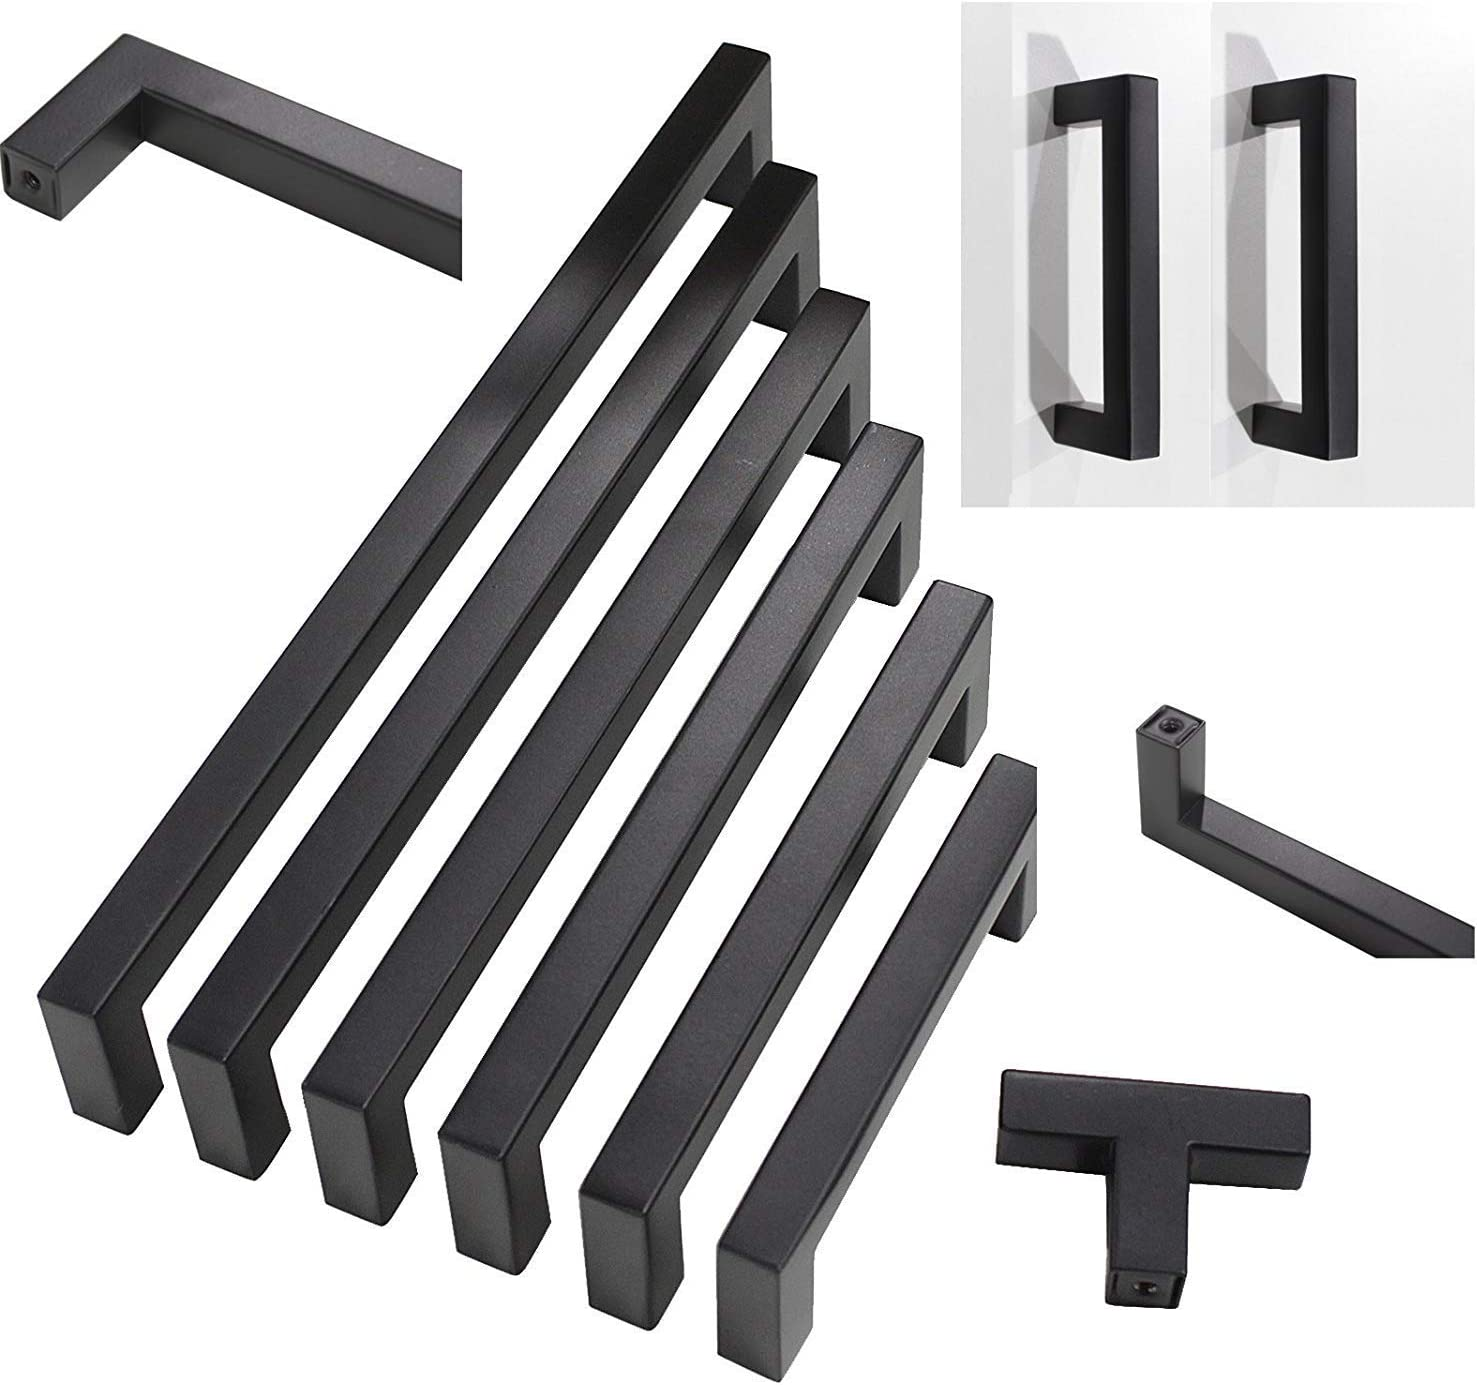 Flat Black Modern Cabinet Hardware Drawer Handle Pulls Kitchen Cupboard T Bar Knobs 5 Pack Stainless Steel Hole Centers:2-1//2in 64mm